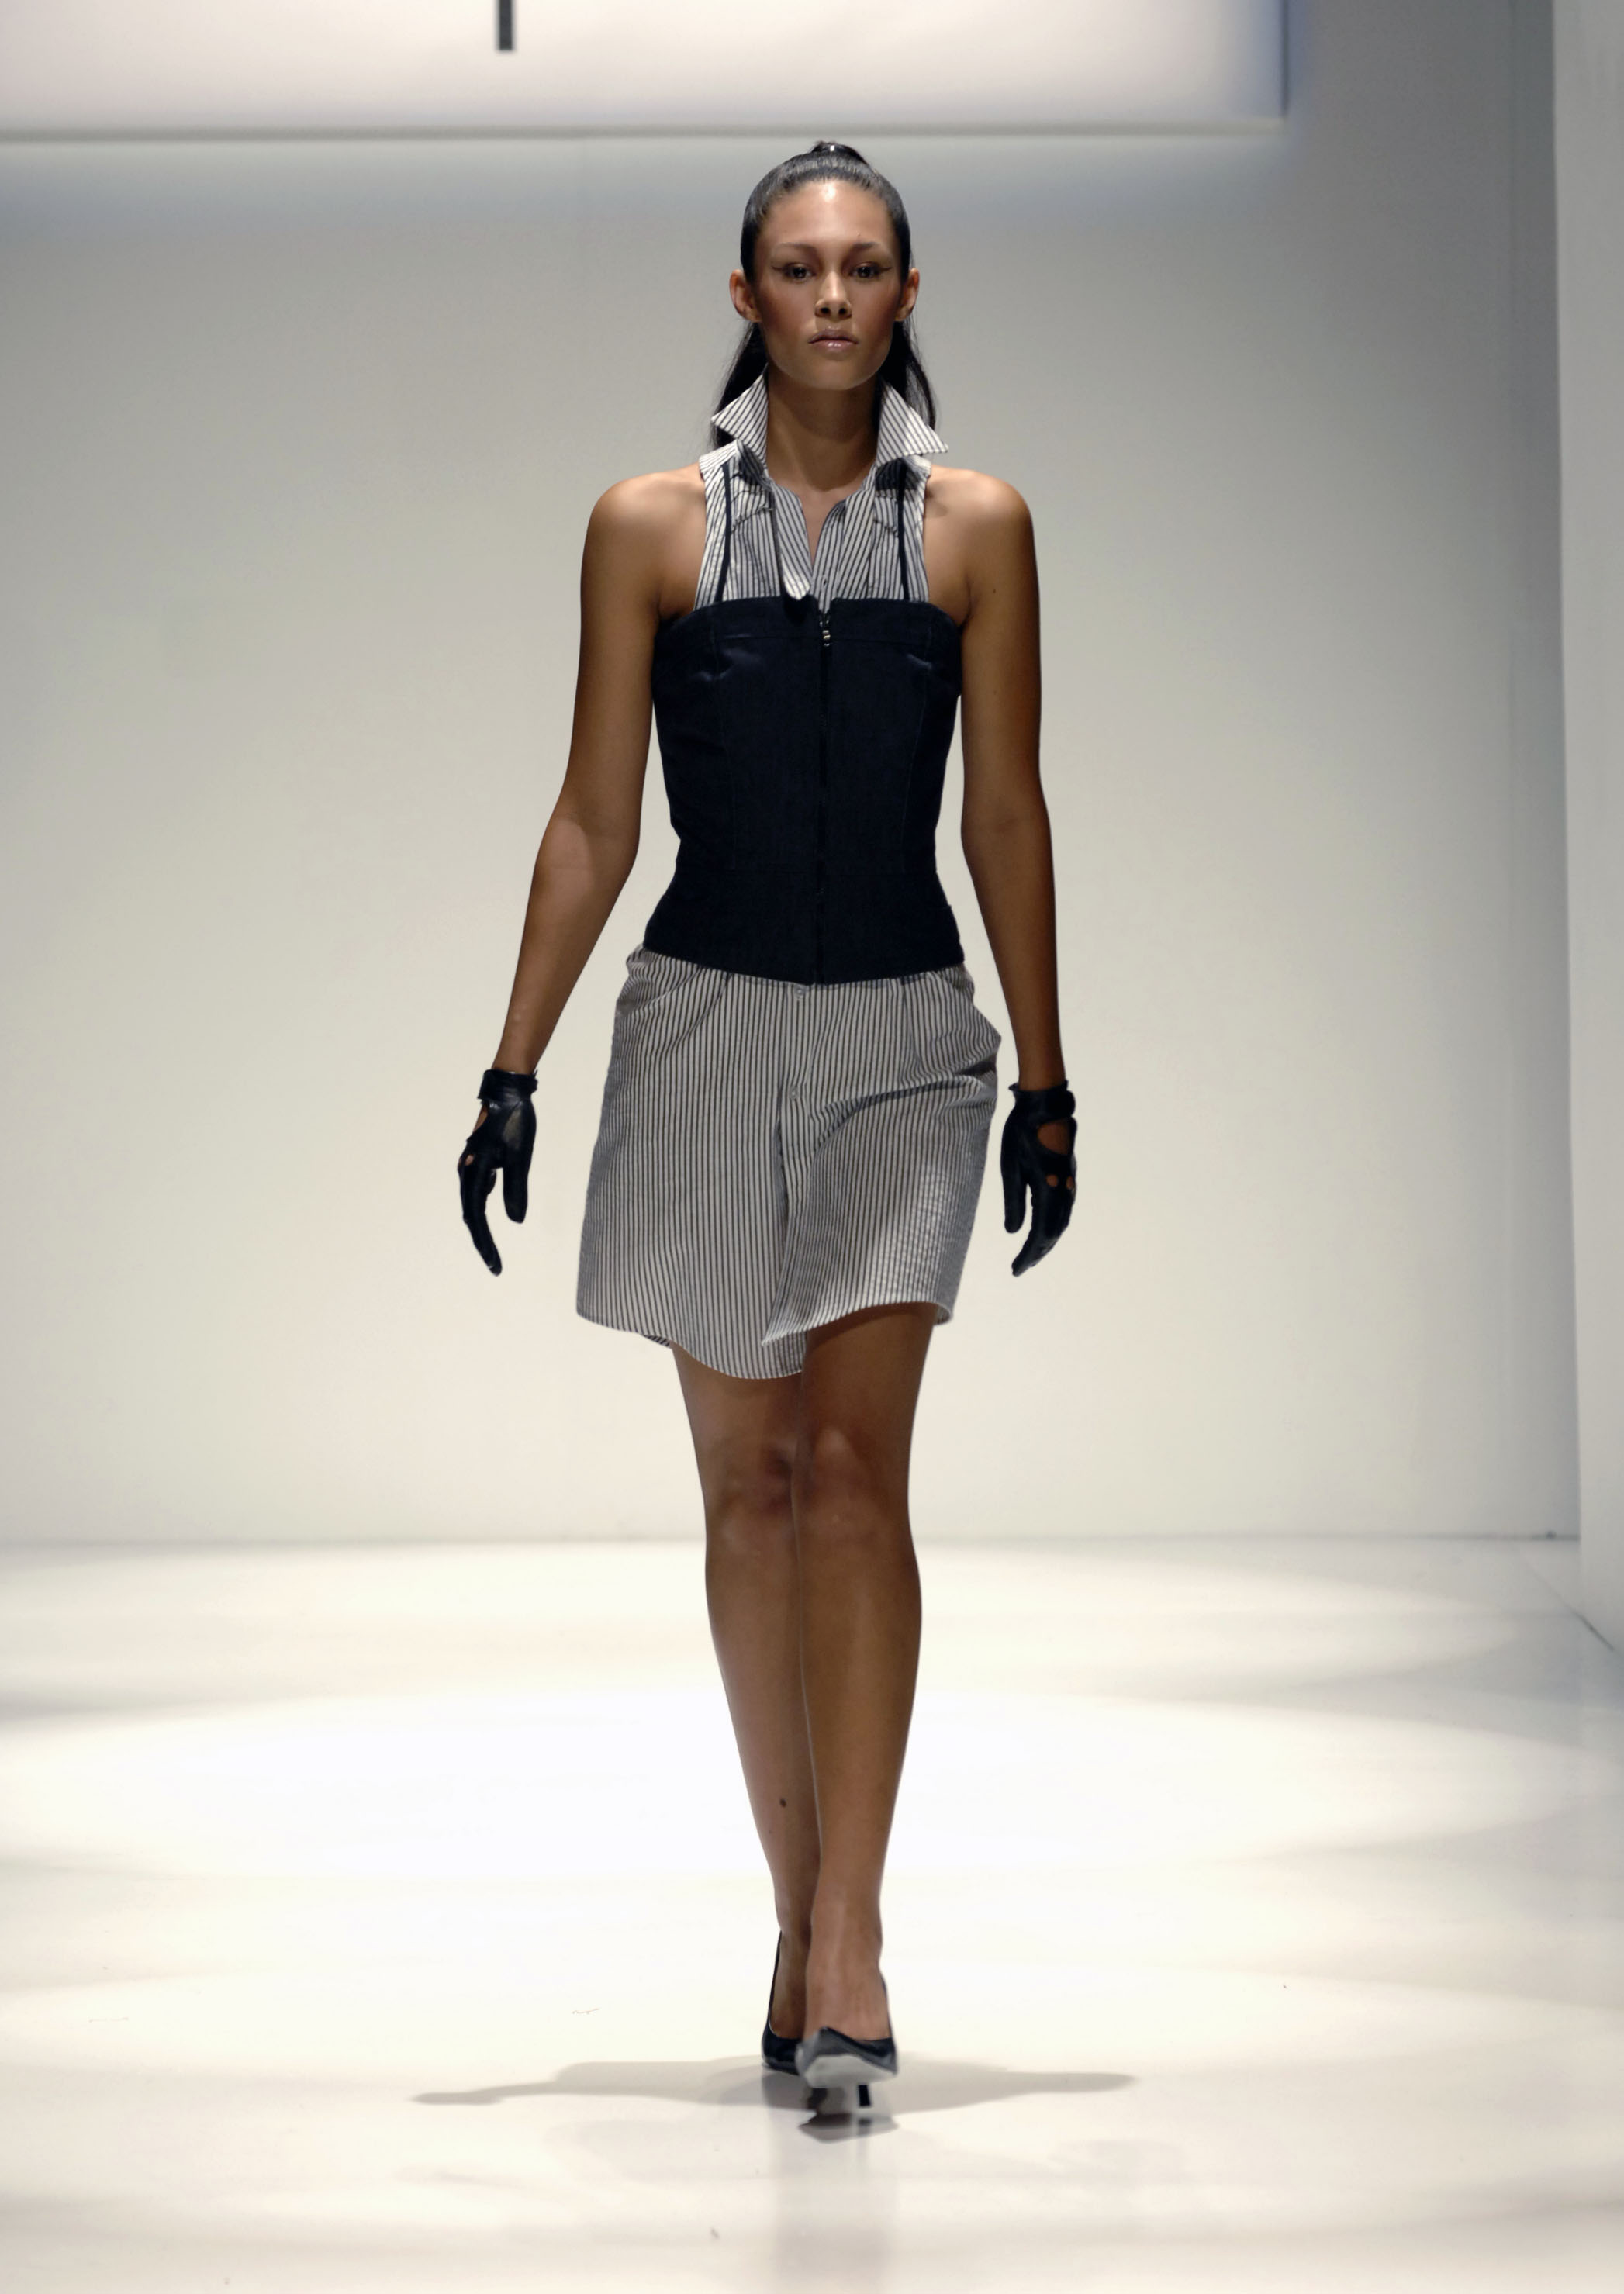 Dcepcion shirtdress with corset